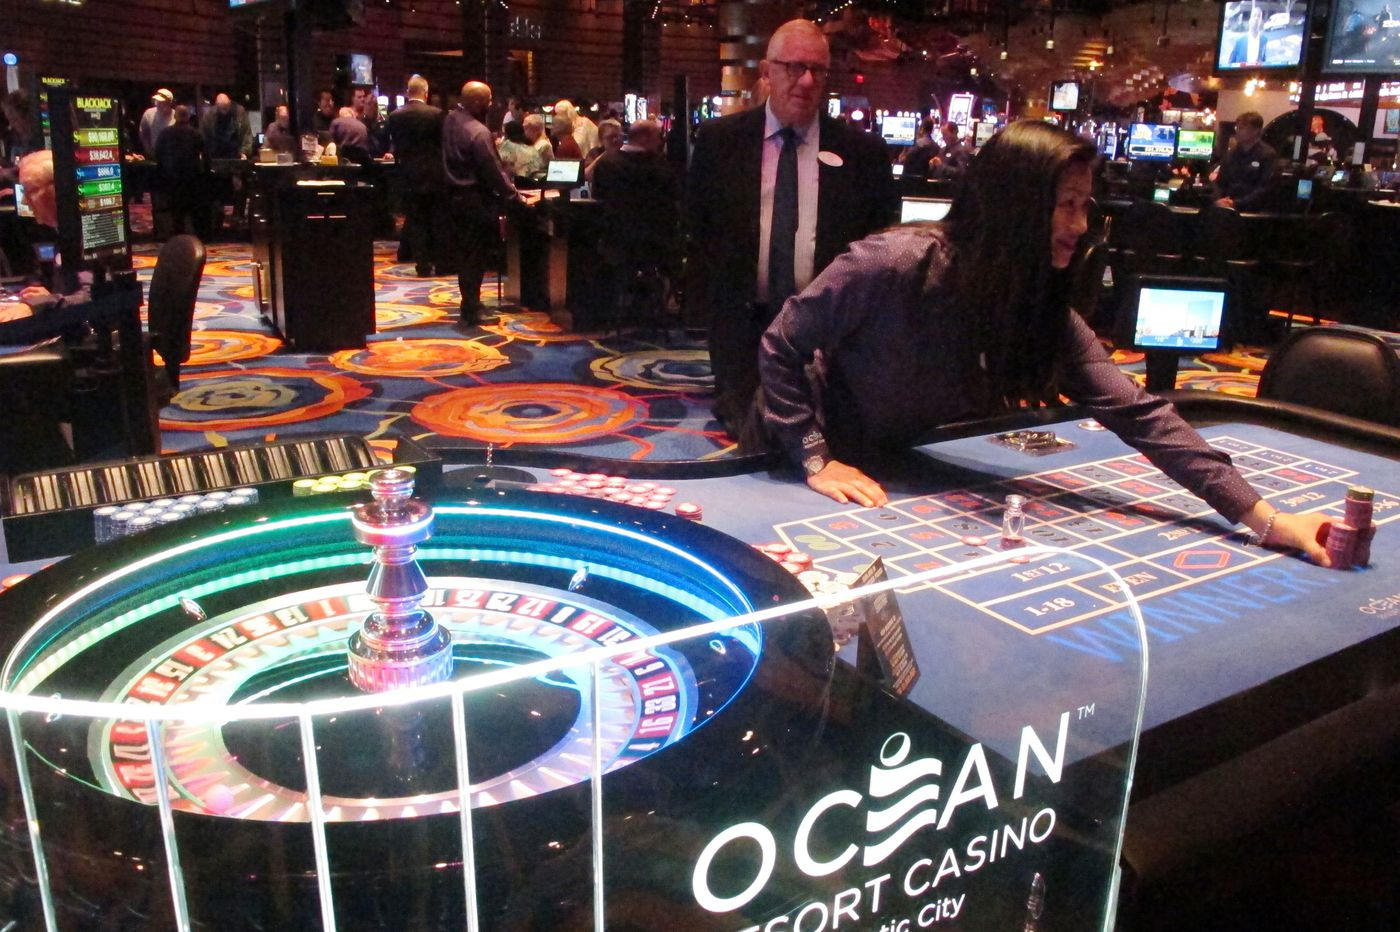 100 days in, Atlantic City's reopened casinos looking good